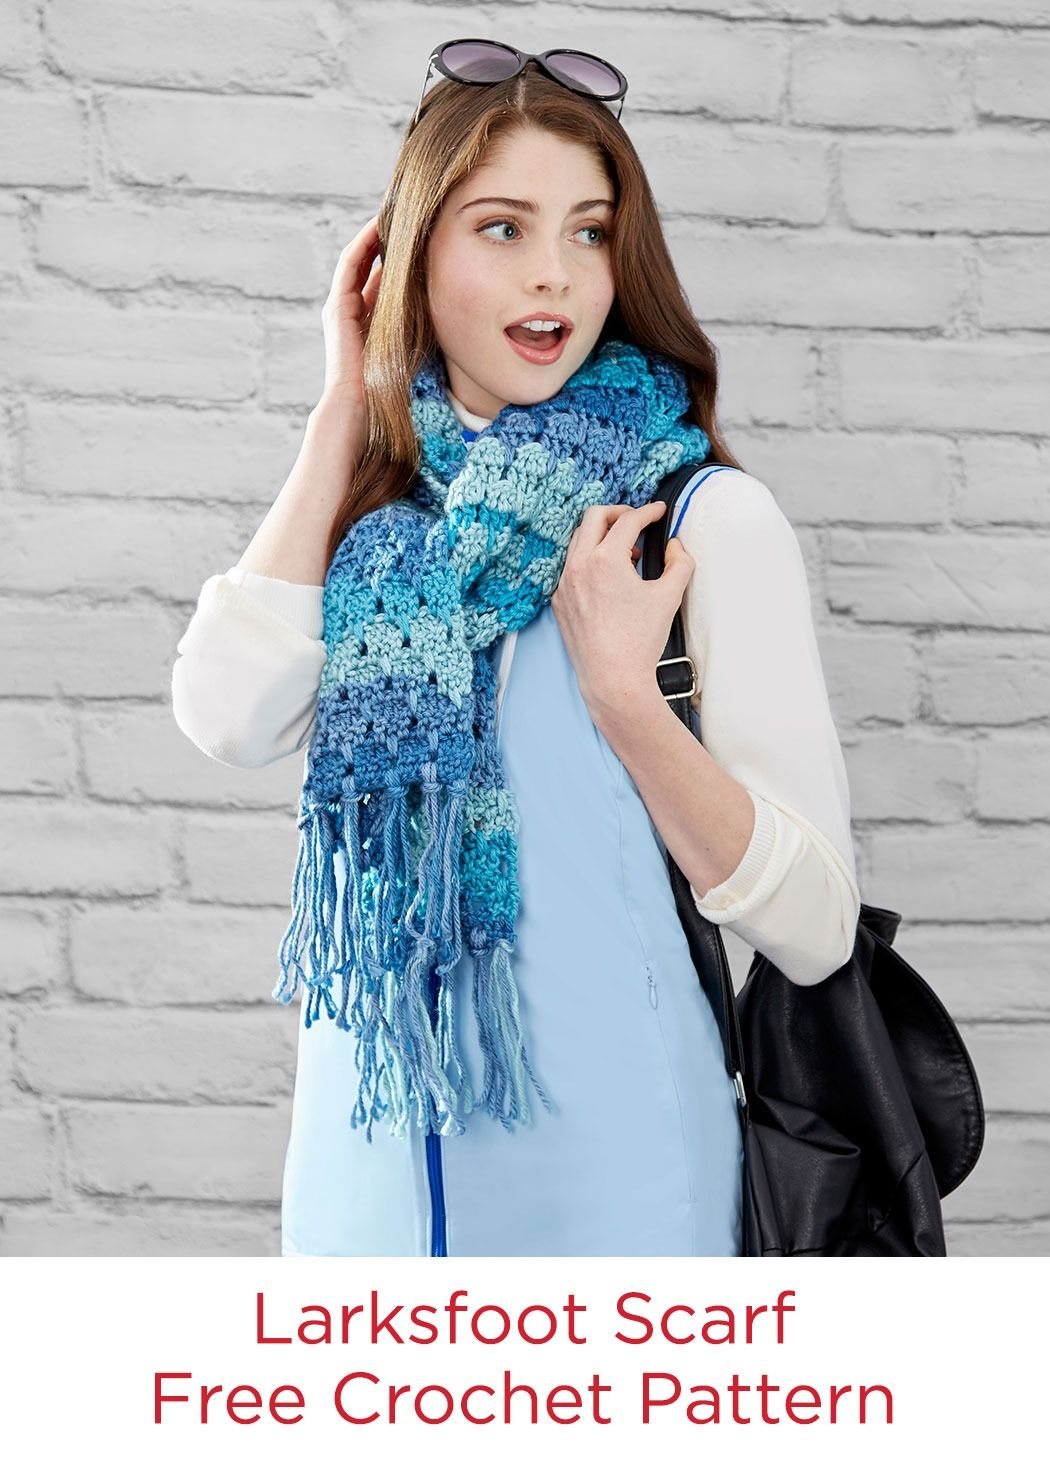 Larksfoot Scarf Free Crochet Pattern in Red Heart Soft Essentials yarn -- The striping colors do all the work for you! The easy-to-learn crochet stitch means you'll have a scarf that will carry you through the cold weather season in style in no time!